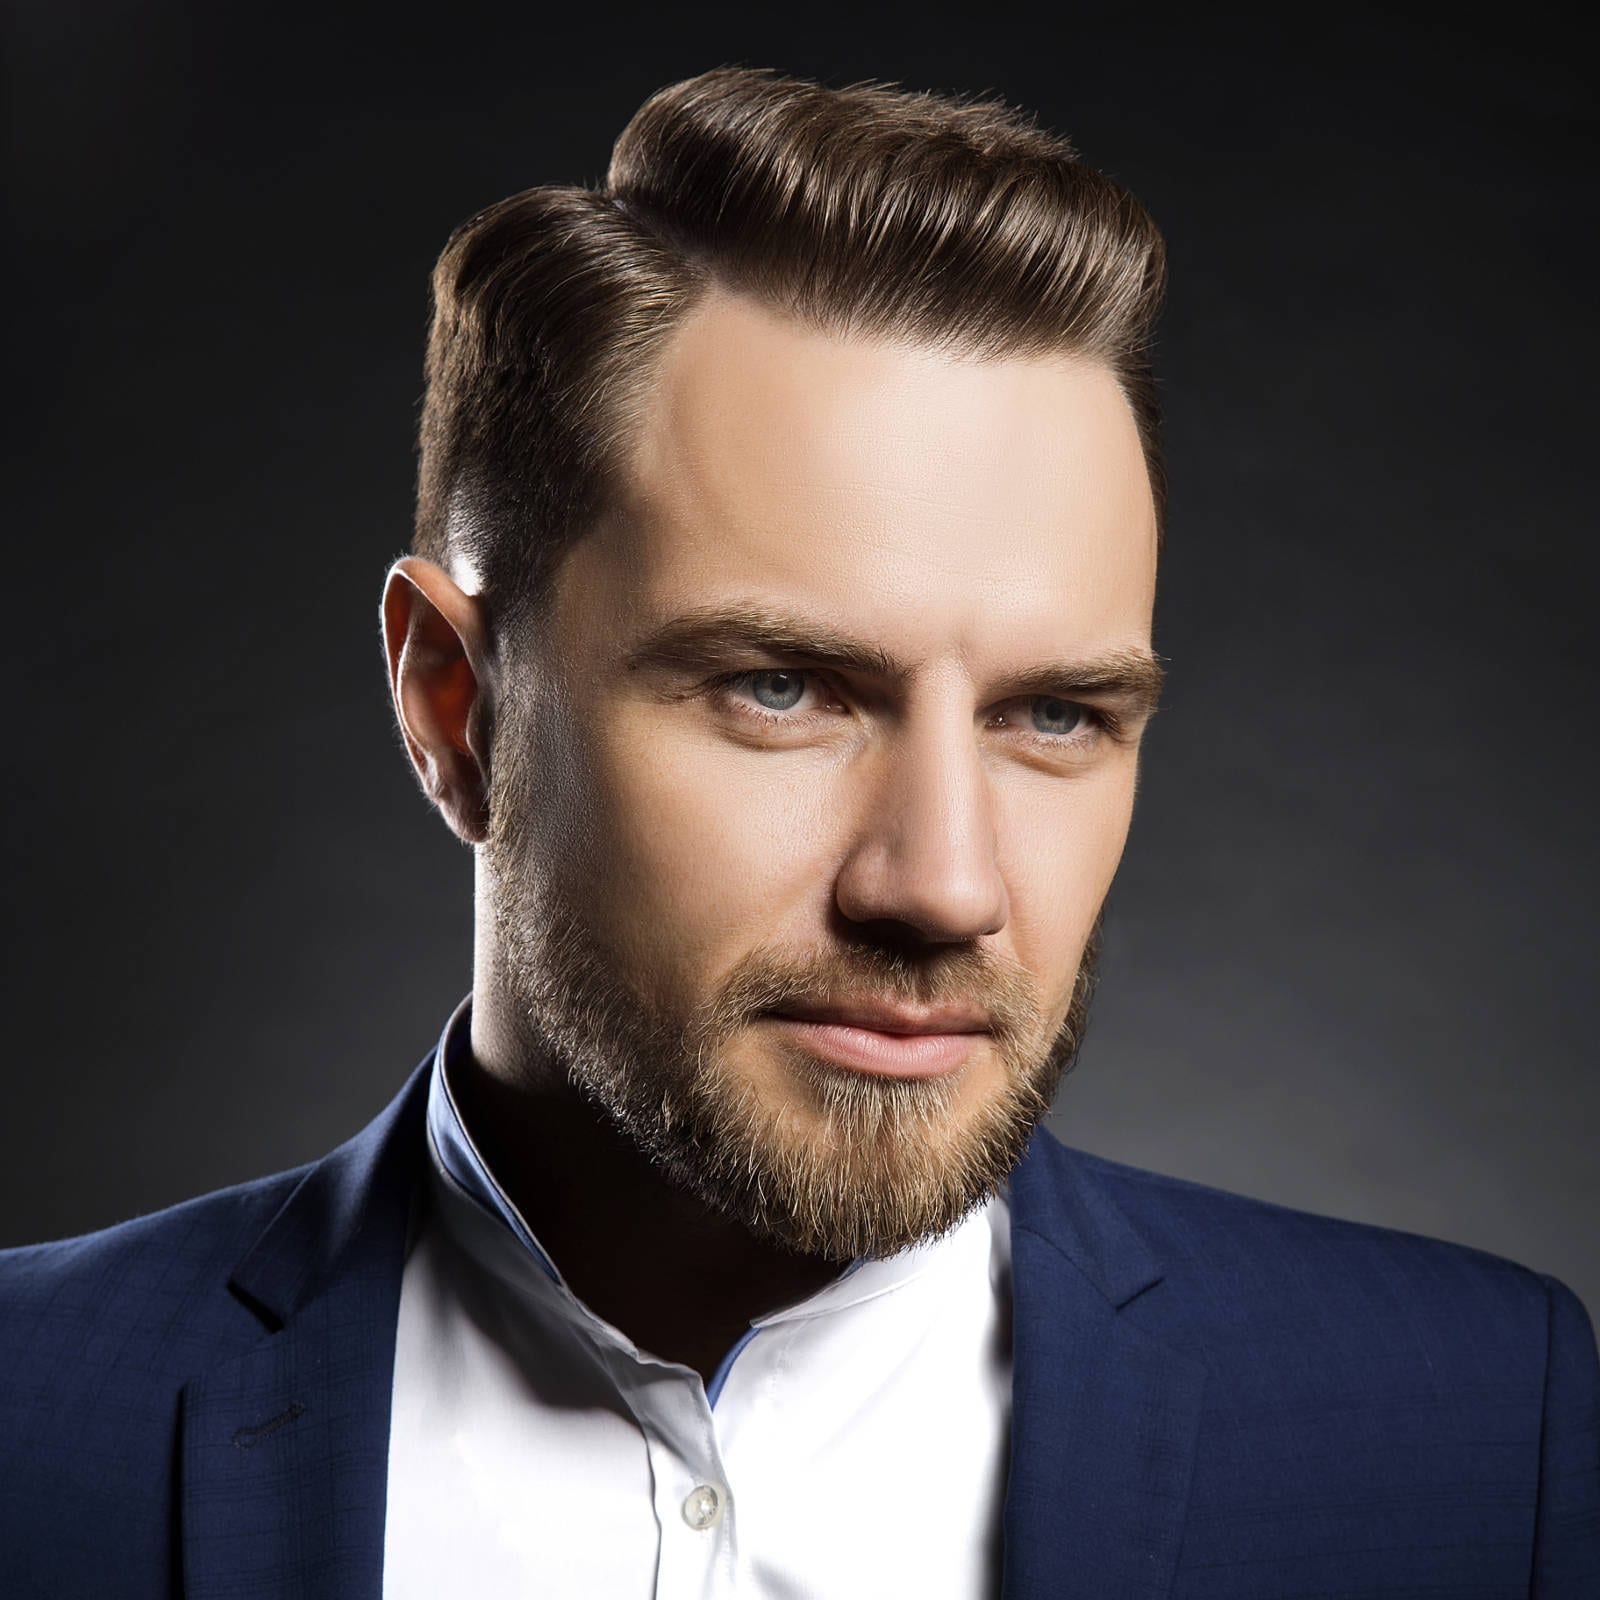 The Side Part Haircut : A Classic Style For Gentlemen